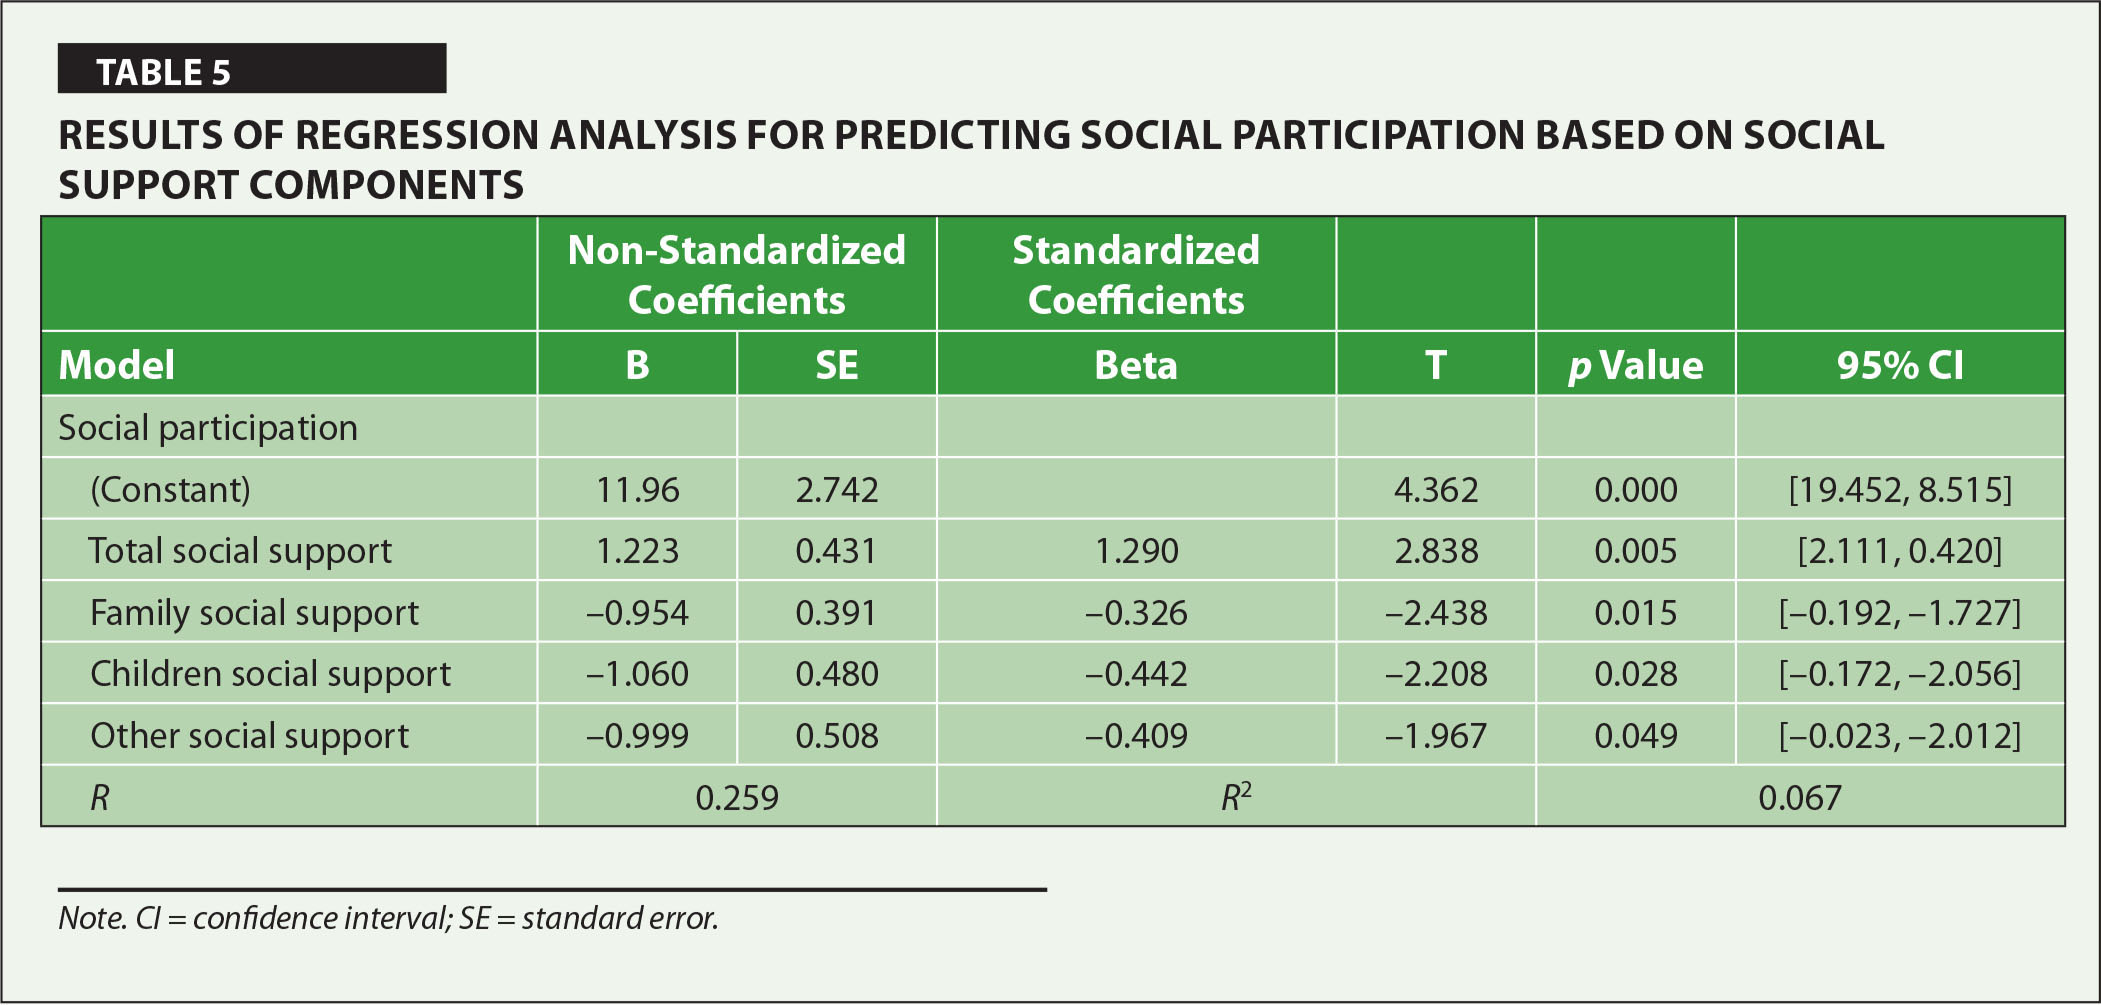 Results of Regression Analysis for Predicting Social Participation Based on Social Support Components